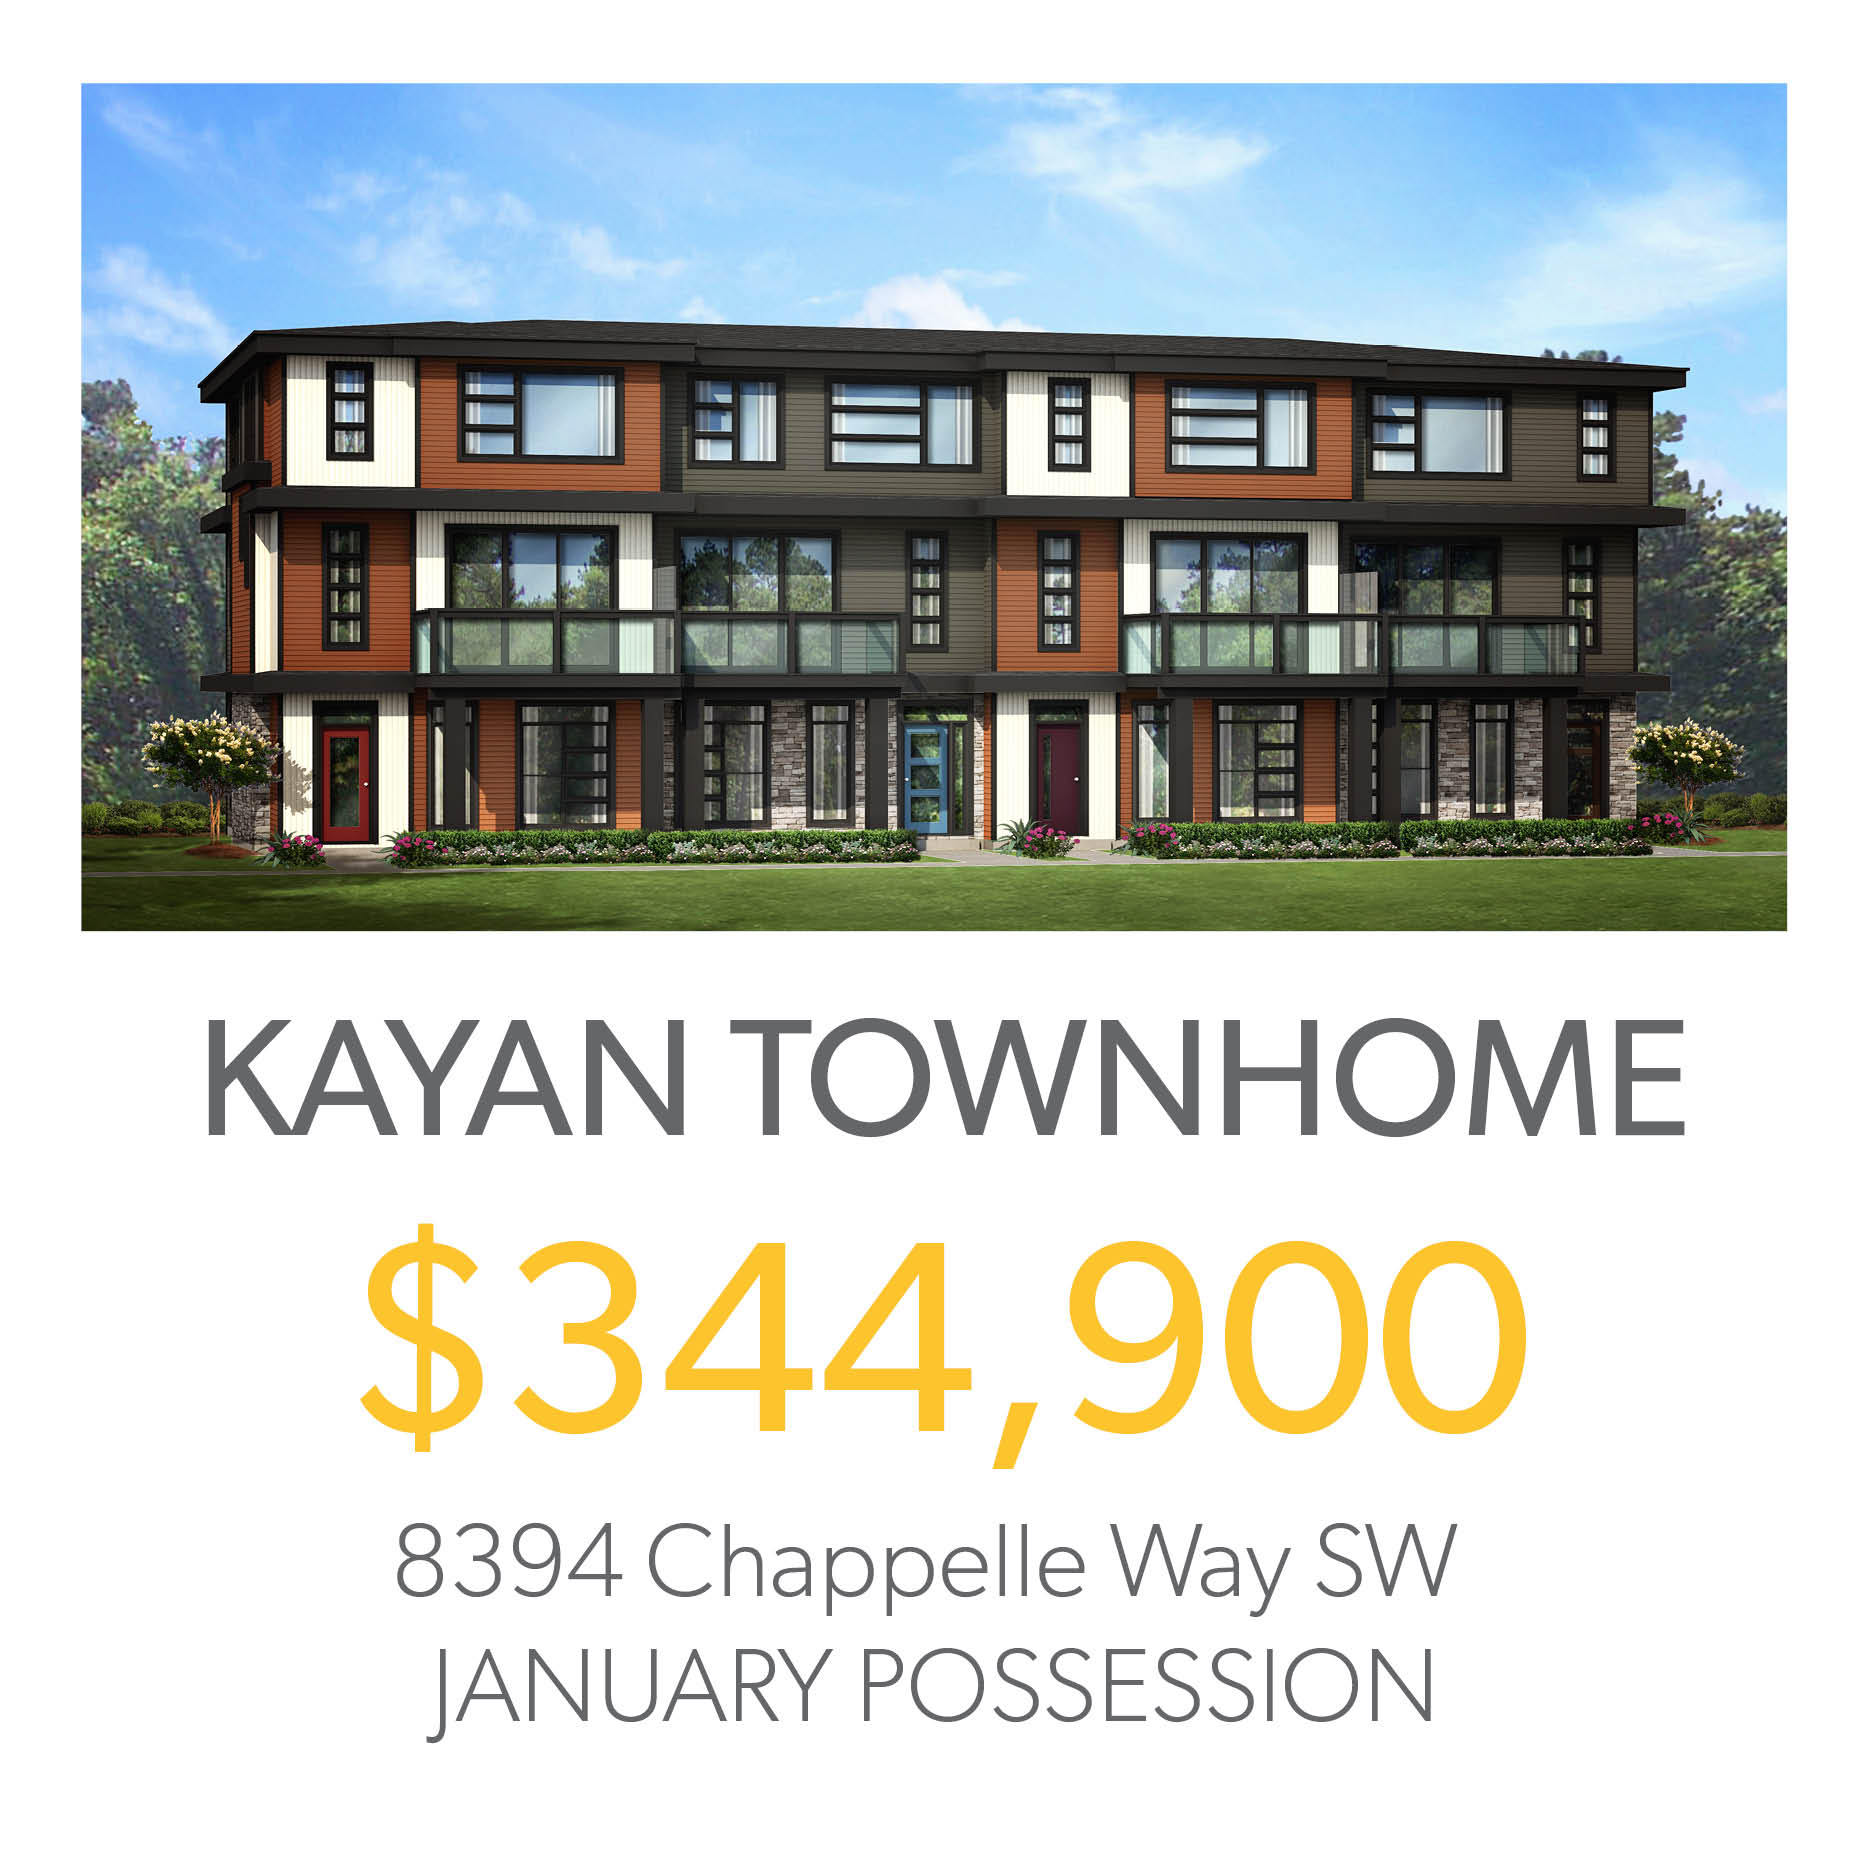 Kayan townhome in south edmonton for sale